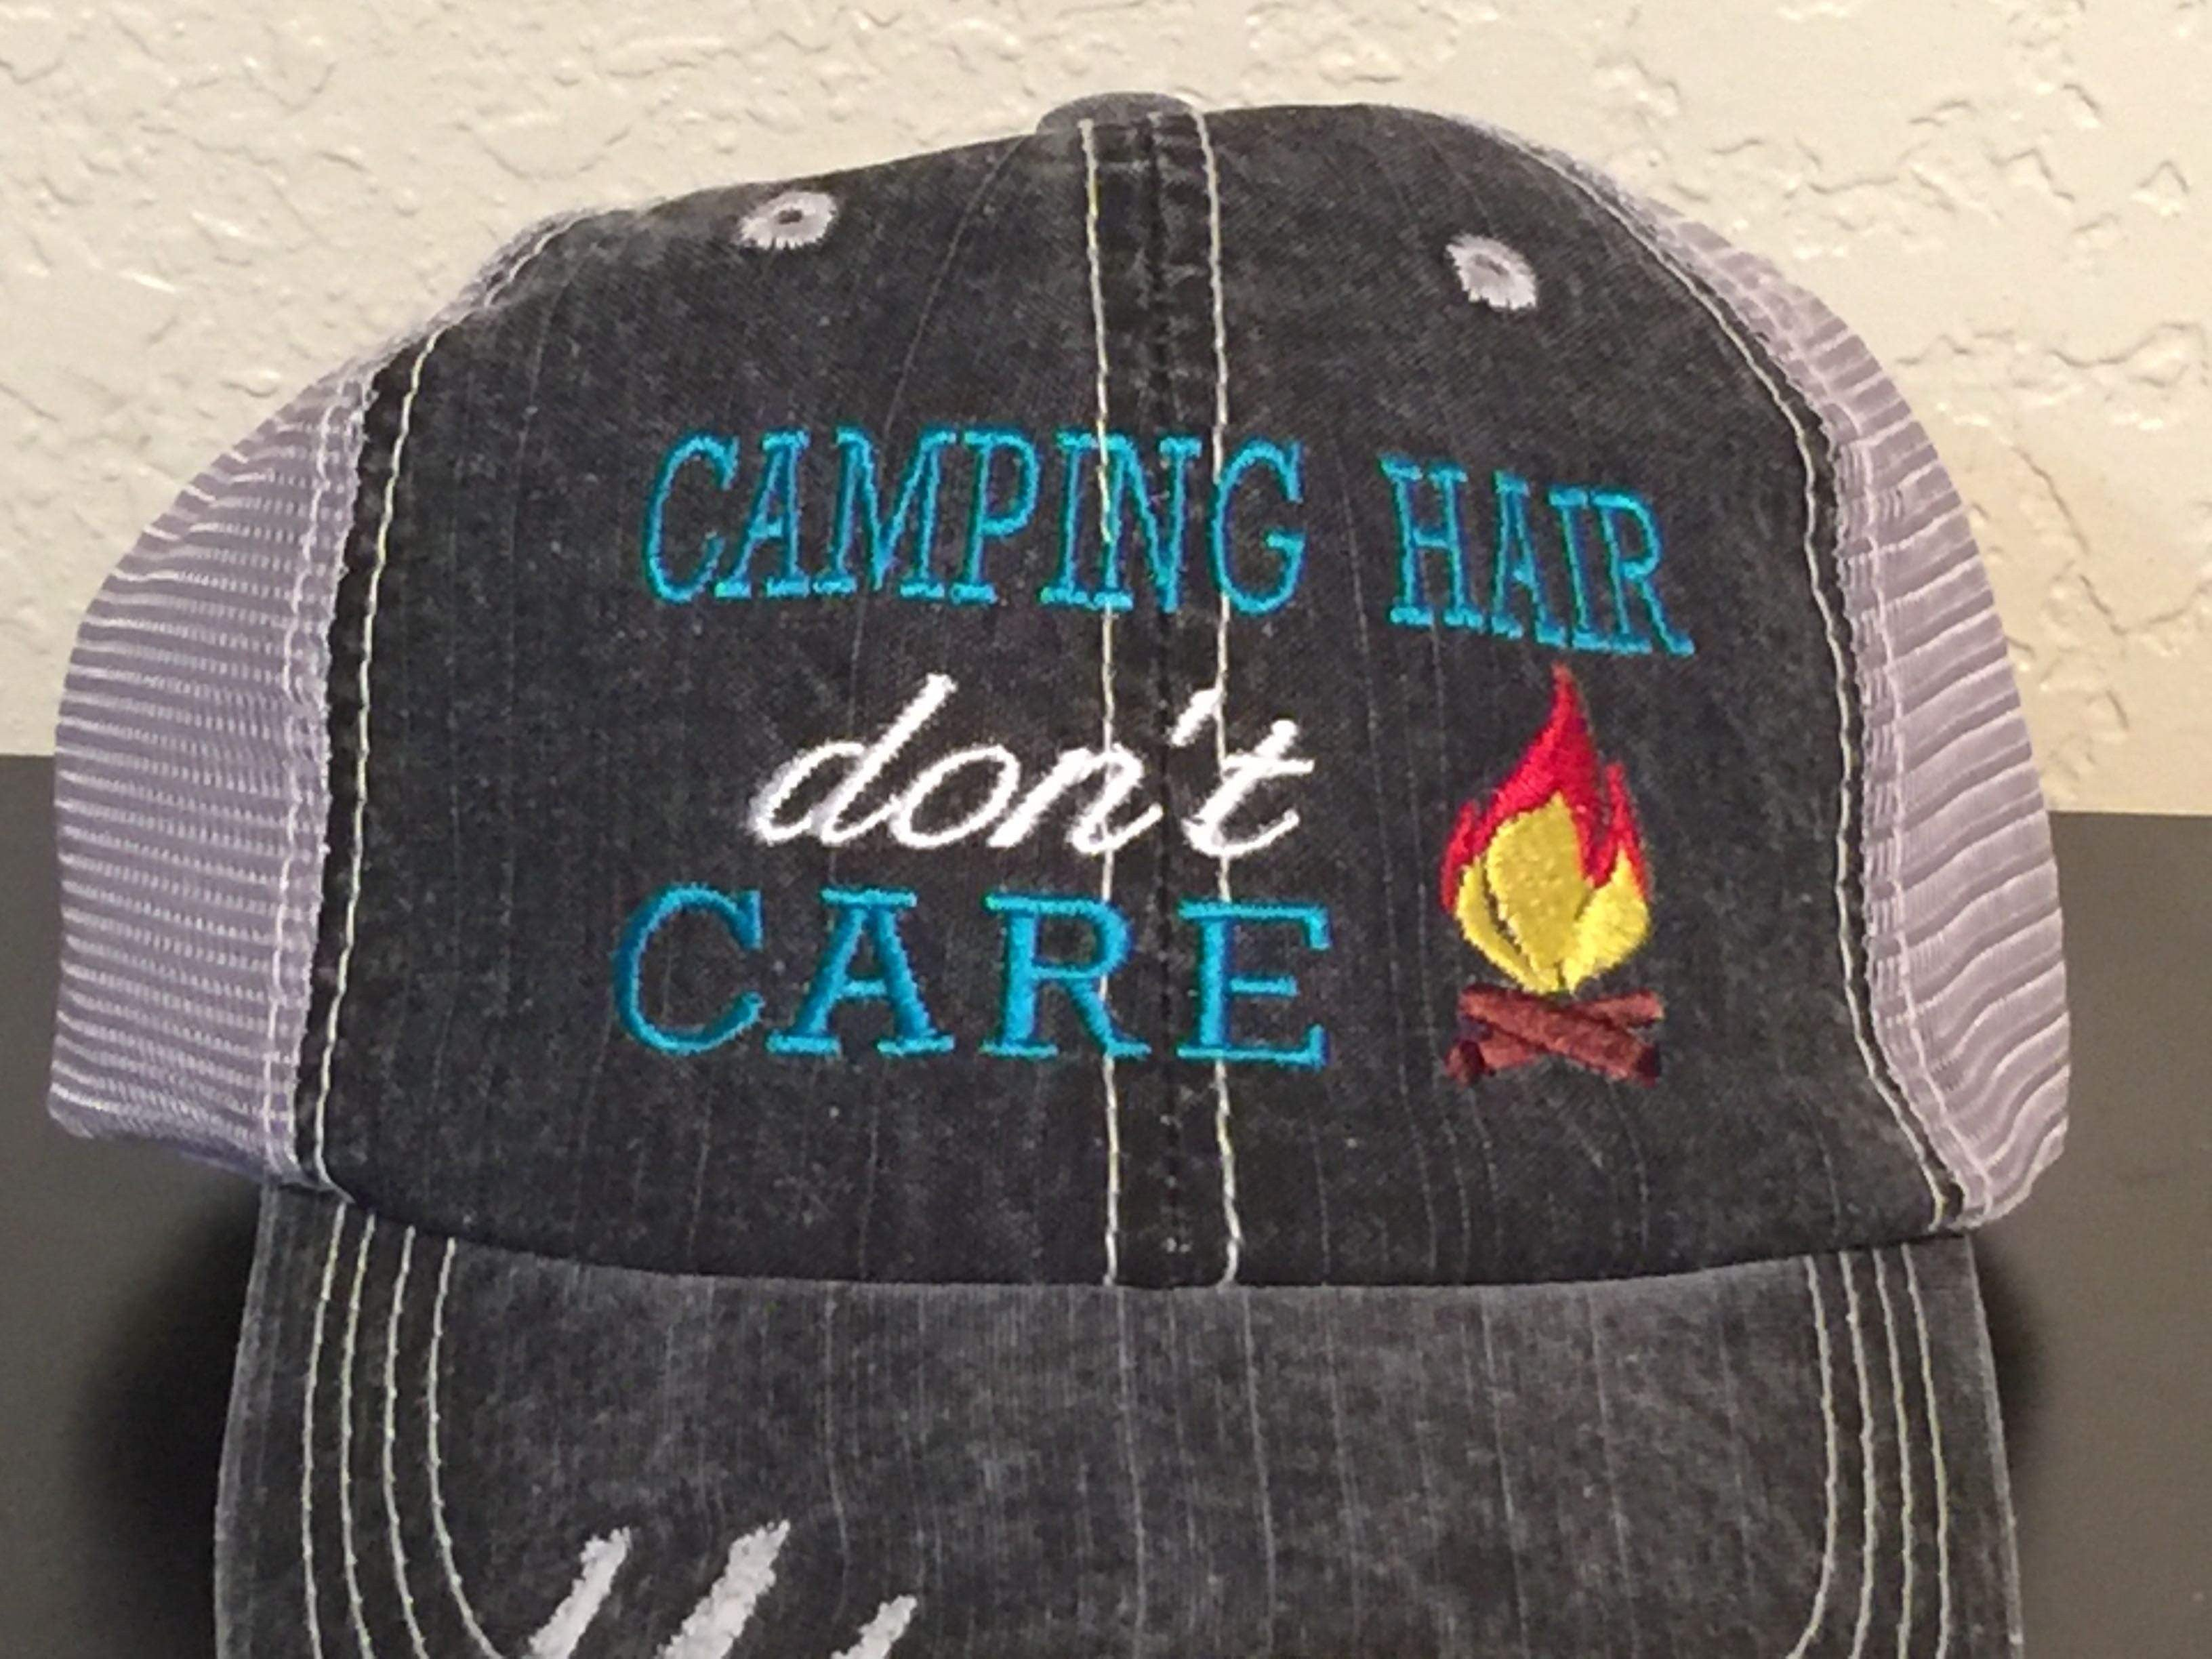 740538d29a6 Camping Hair Don t Care Embroidered Distressed Trucker Cap – CoHo Bags